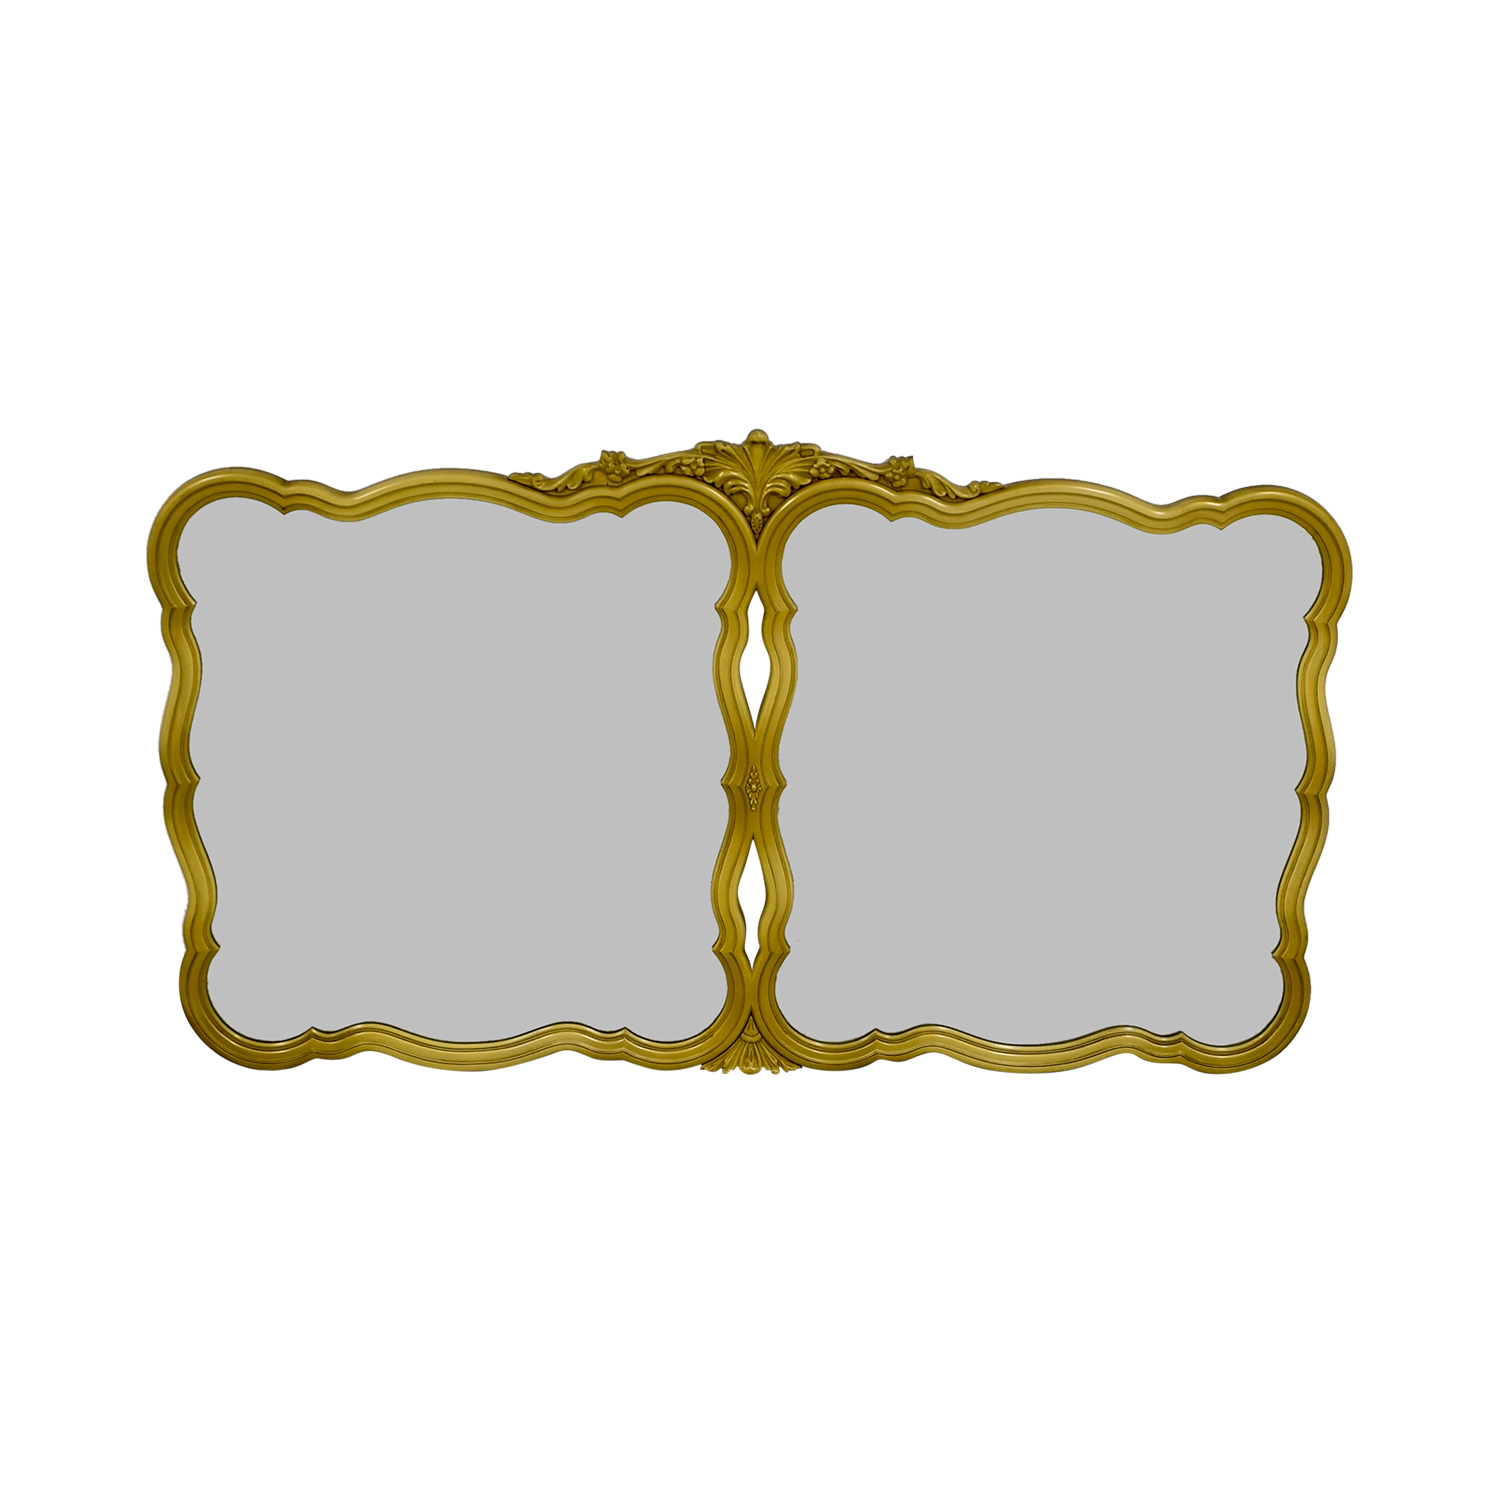 Vintage Gold Framed Double Wall Mirror nj